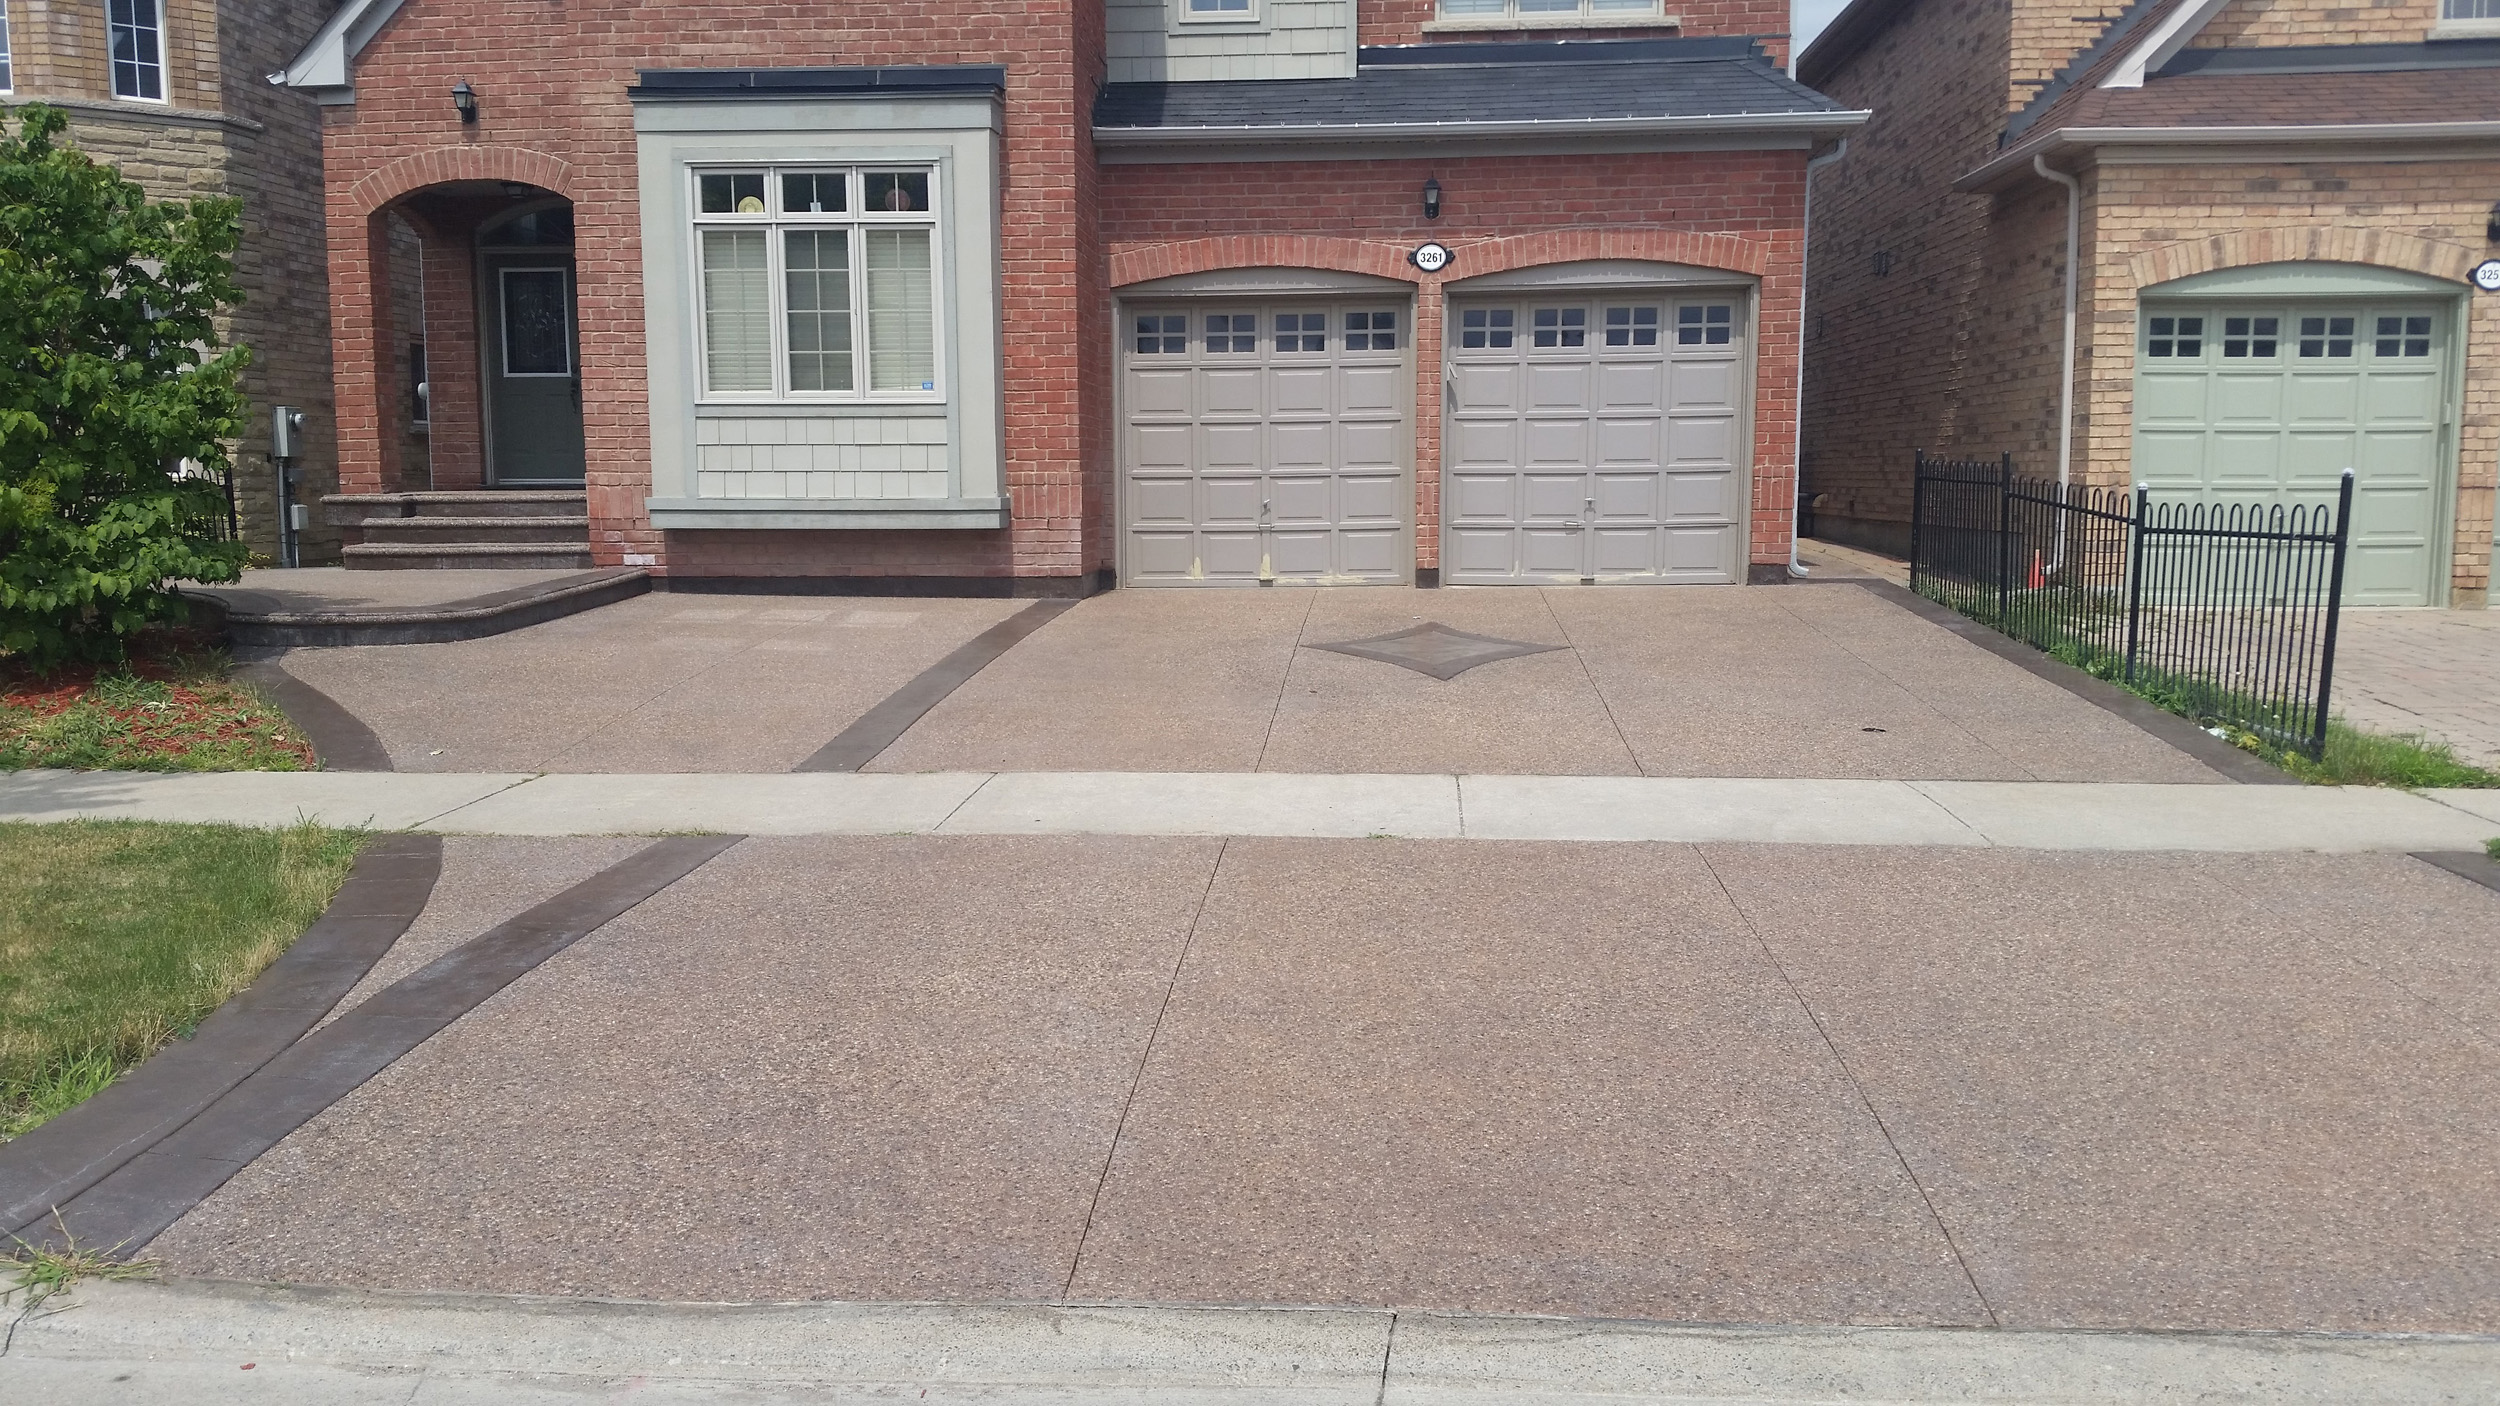 Concrete Trimmings Ltd. - Combination Exposed Aggregate Concrete and Stamped Concrete - 0001A